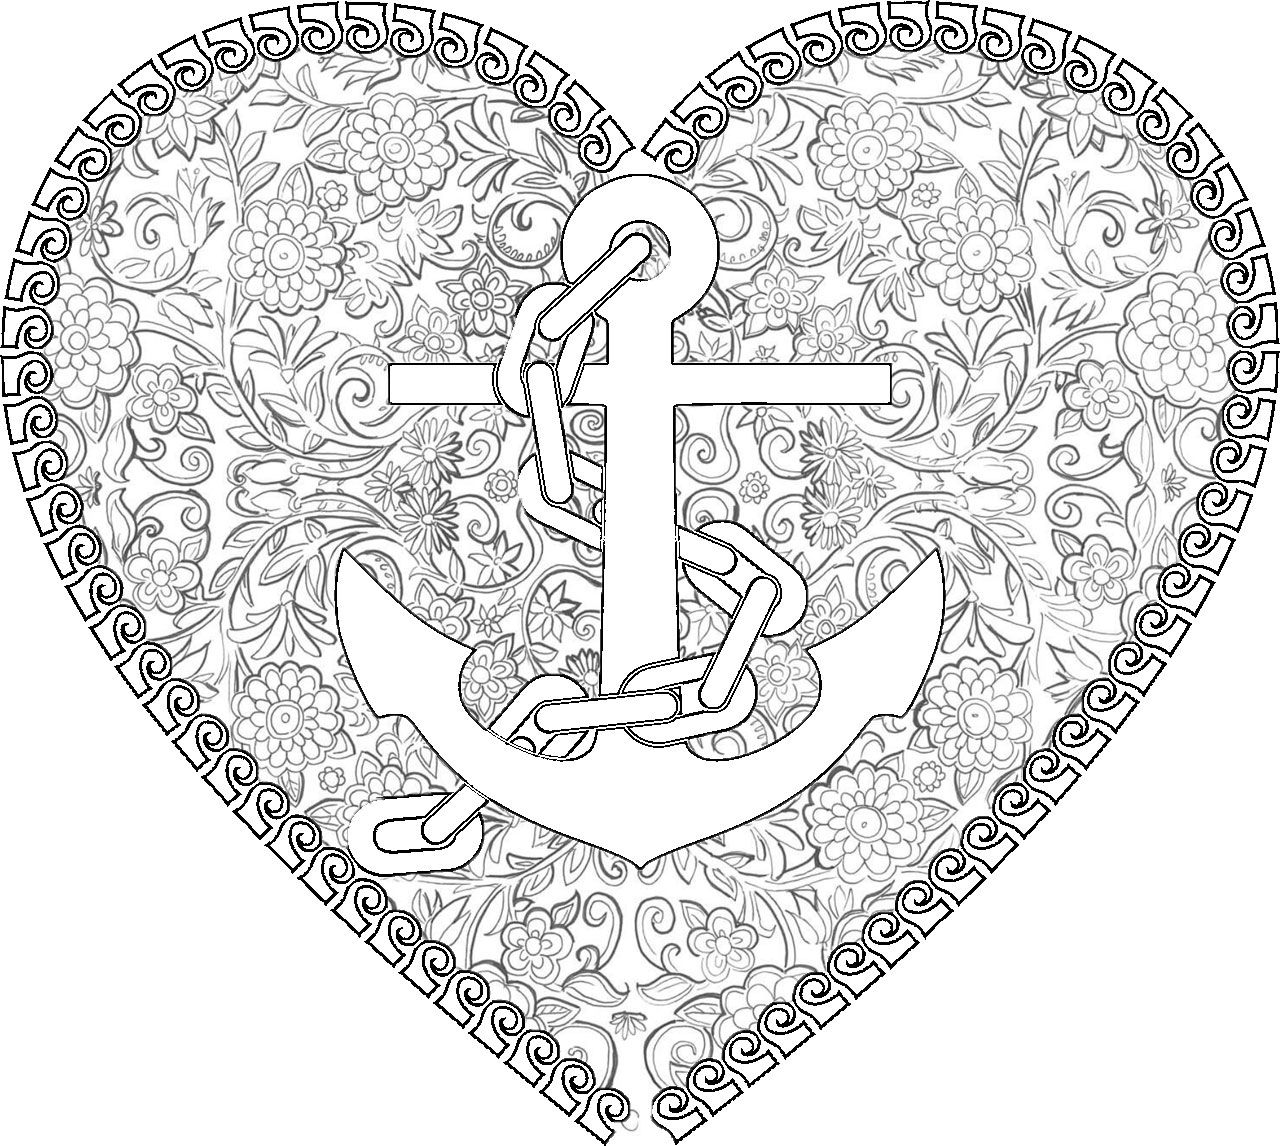 Printable Adult Coloring Page Anchor Anchor Free Colouring Pages